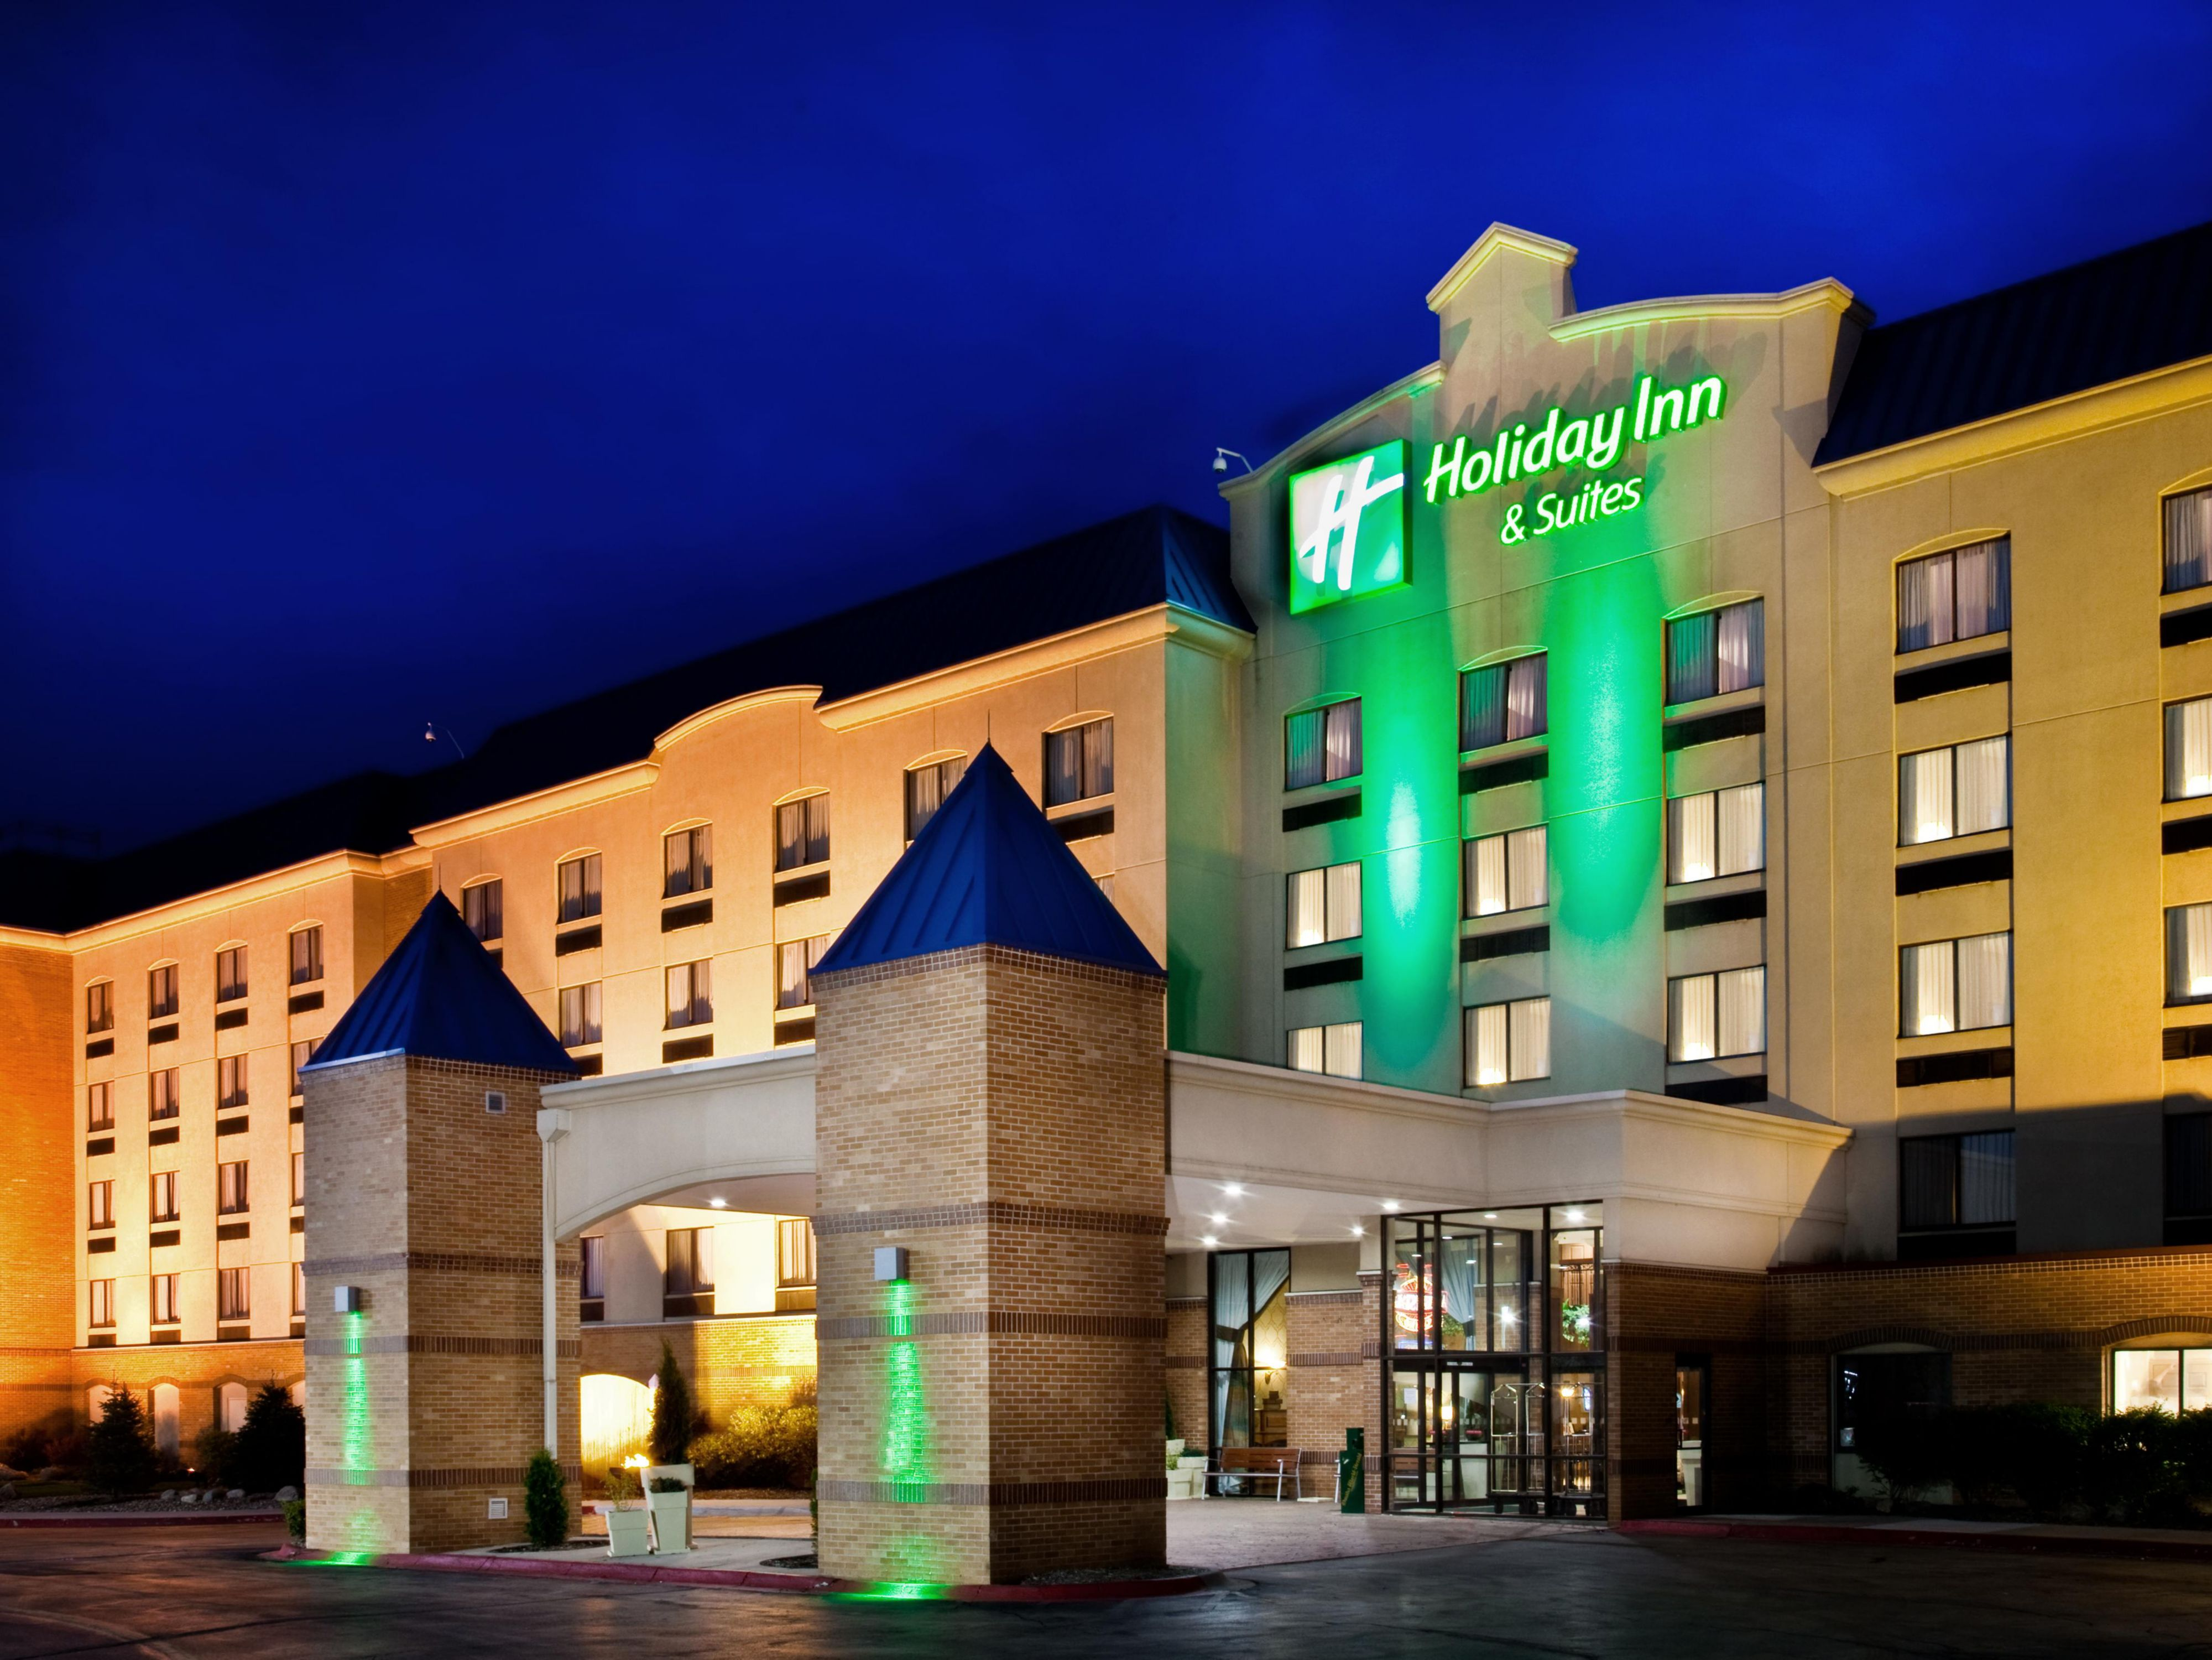 Hotel In Council Bluffs Iowa Near Omaha Ne Holiday Inn Suites